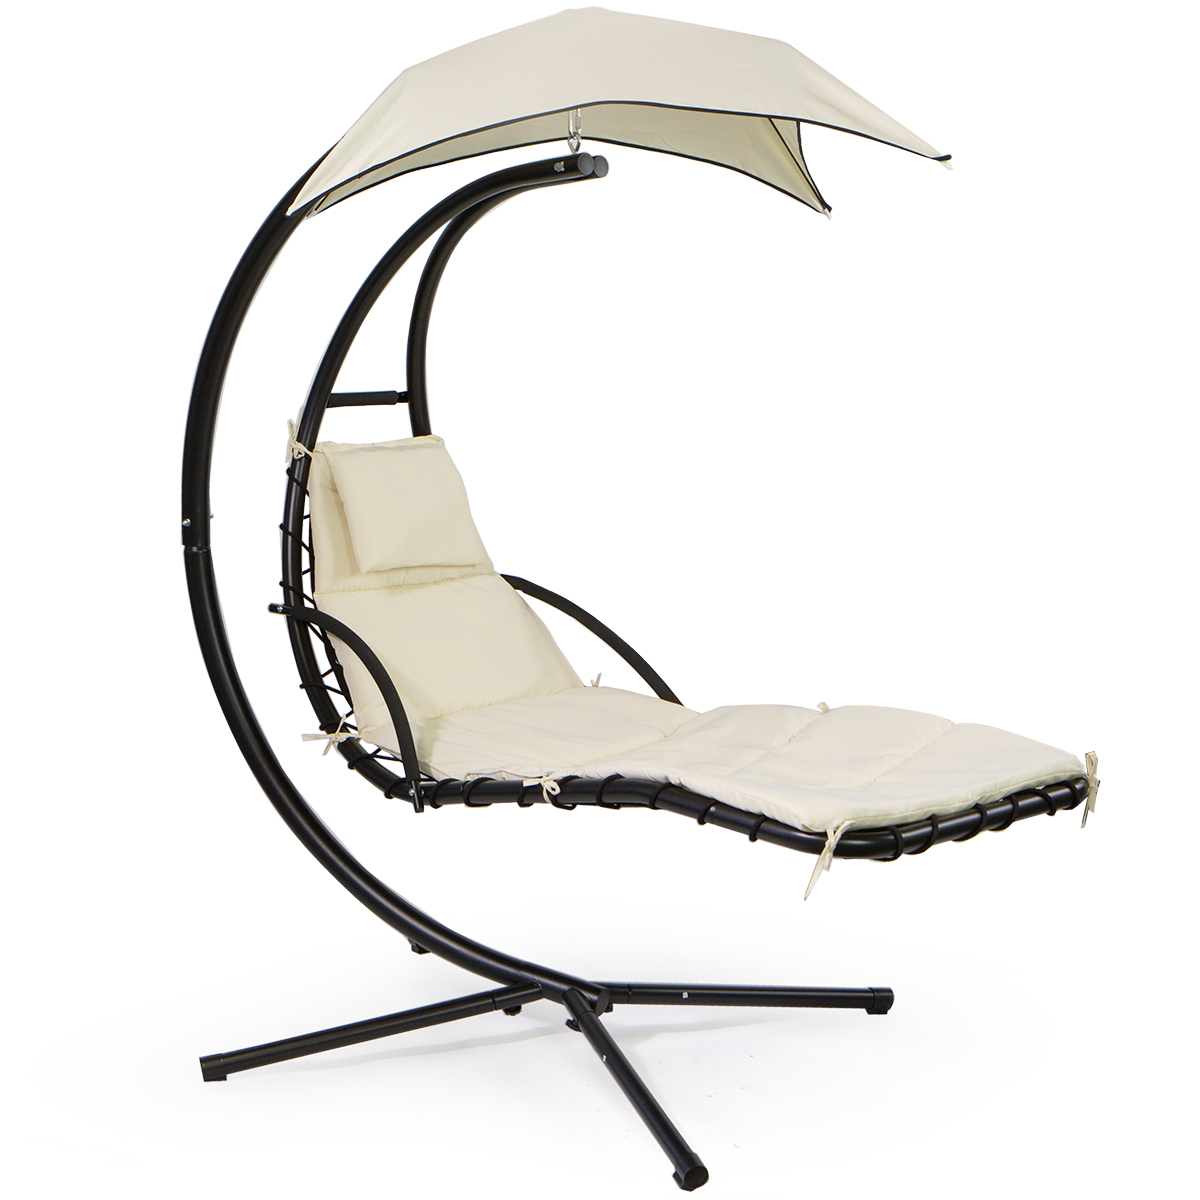 Barton Patio Hanging Helicopter dream Lounger Chair Stand ... on Hanging Helicopter Dream Lounger Chair id=48971